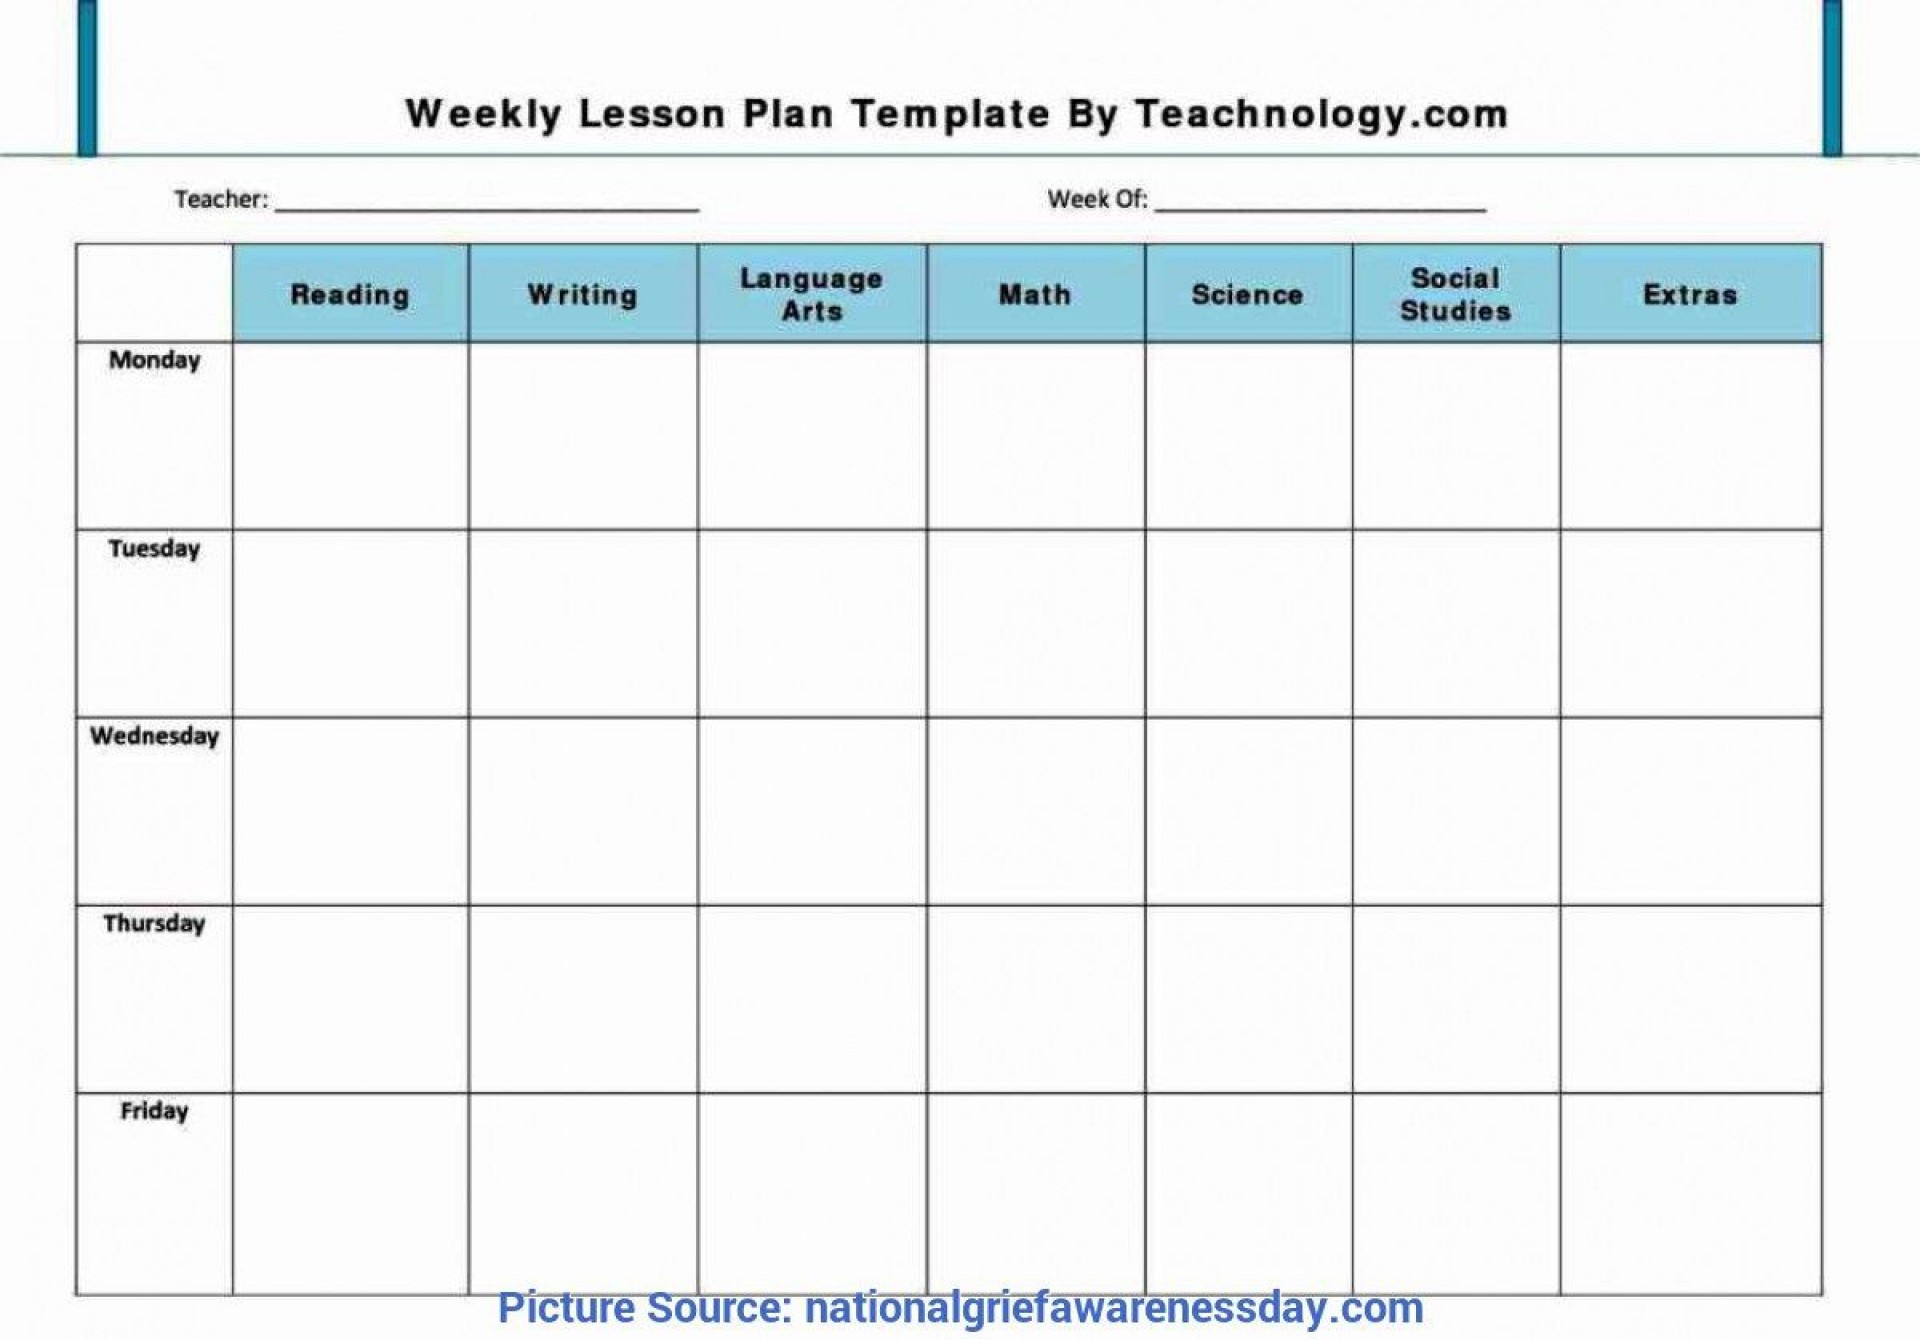 001 Remarkable Weekly Lesson Plan Template Pdf Example  Blank1920